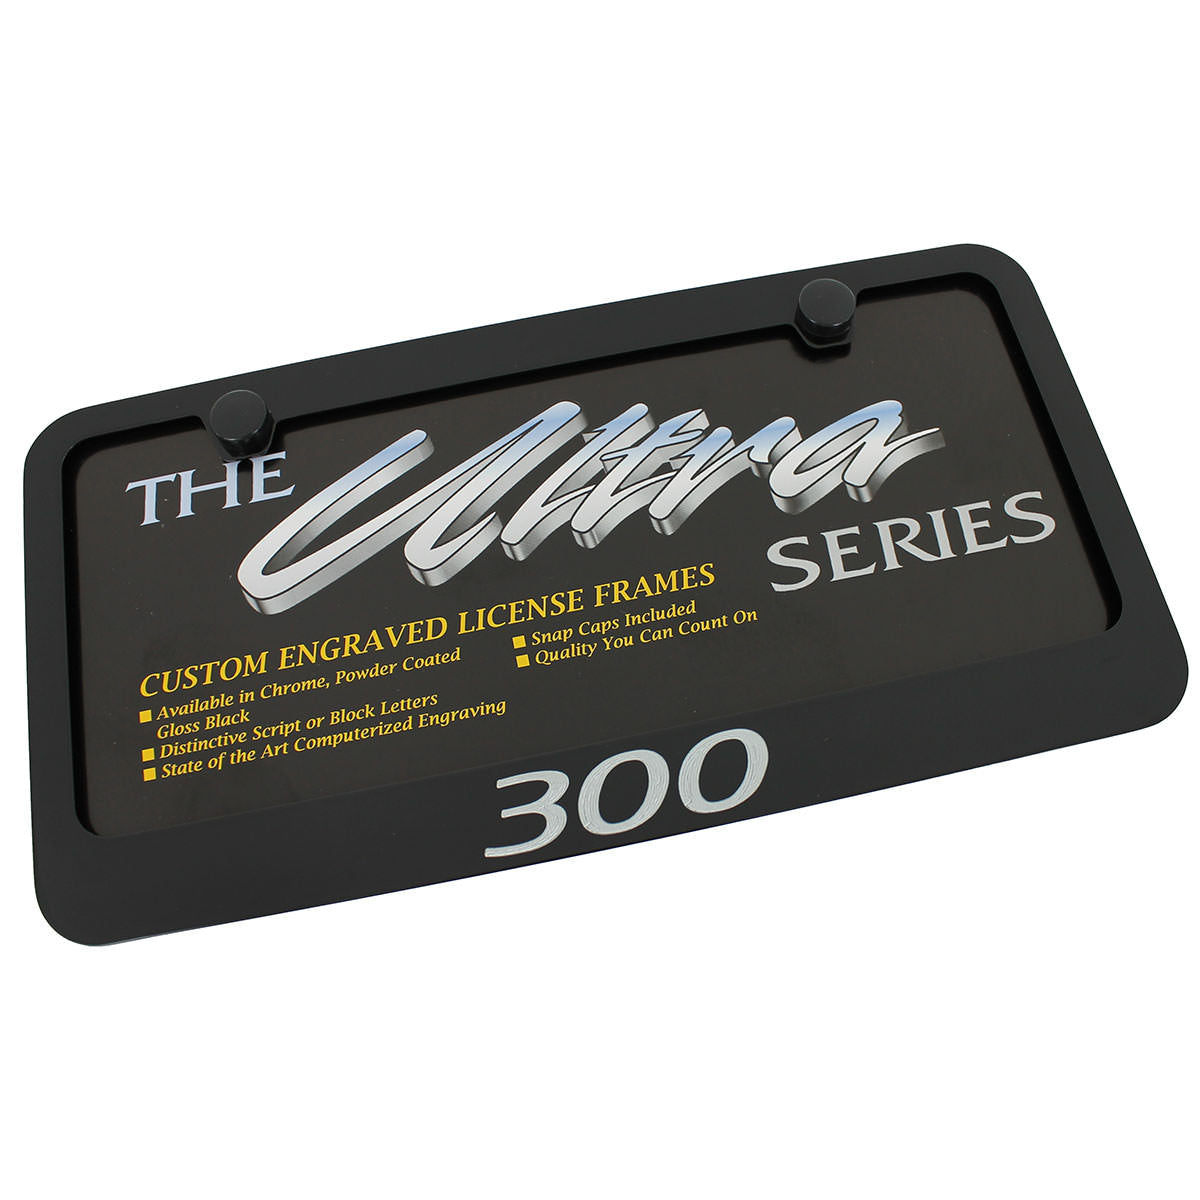 Chrysler 300 License Plate Frame (Black) - Custom Werks